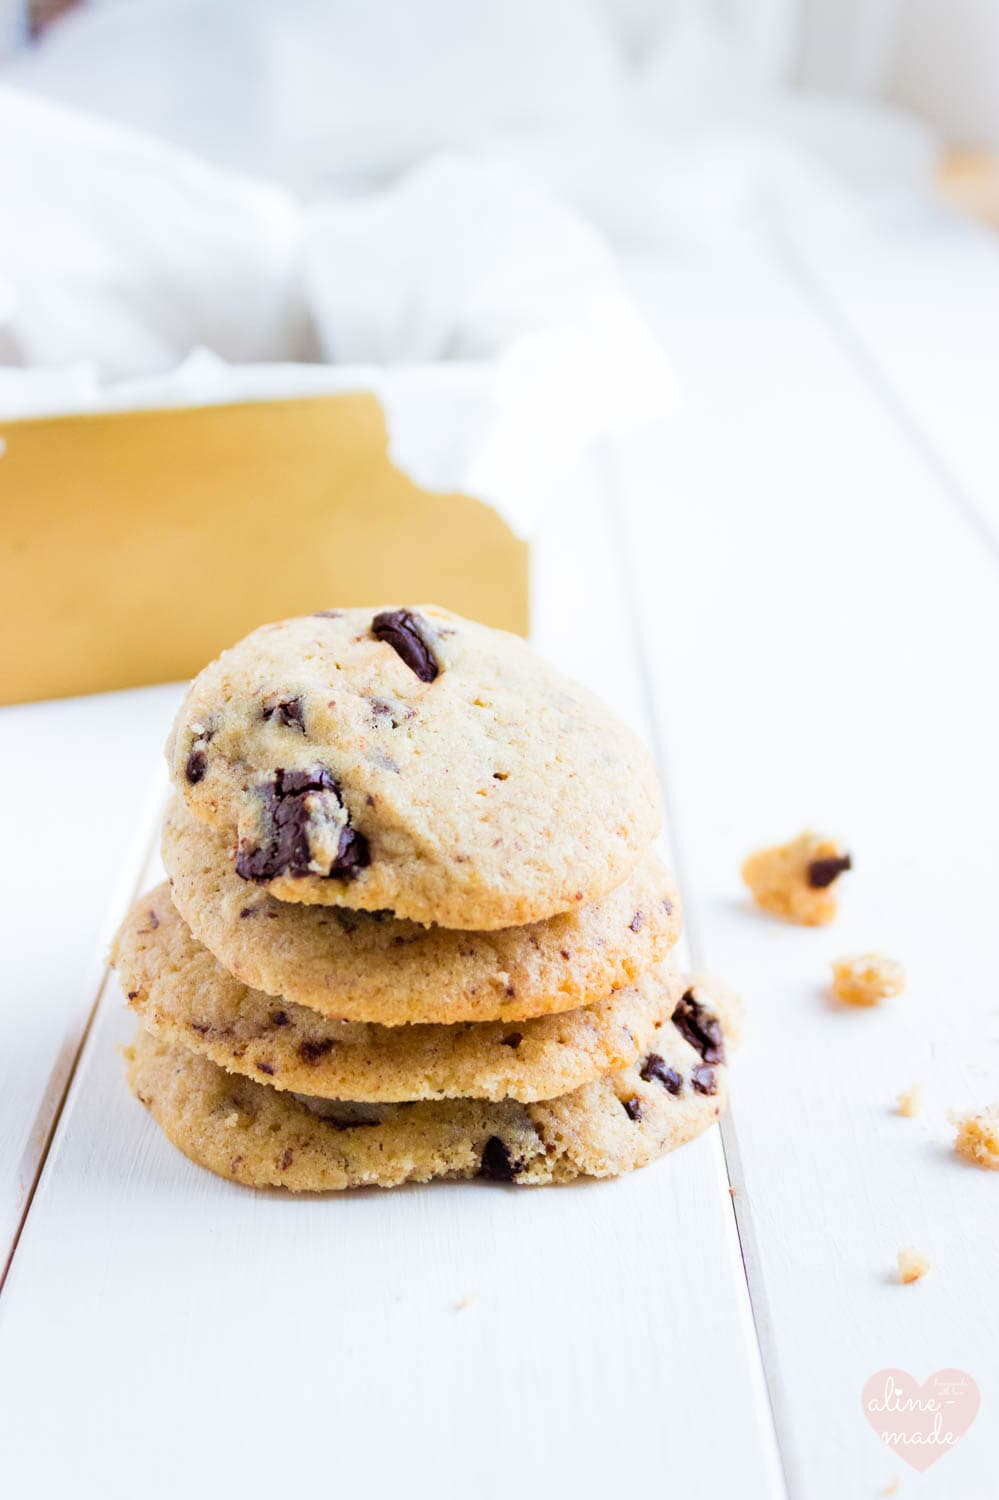 Pecan Butter Chocolate Chip Cookies - With dark chocolate chips and pecan nut butter.